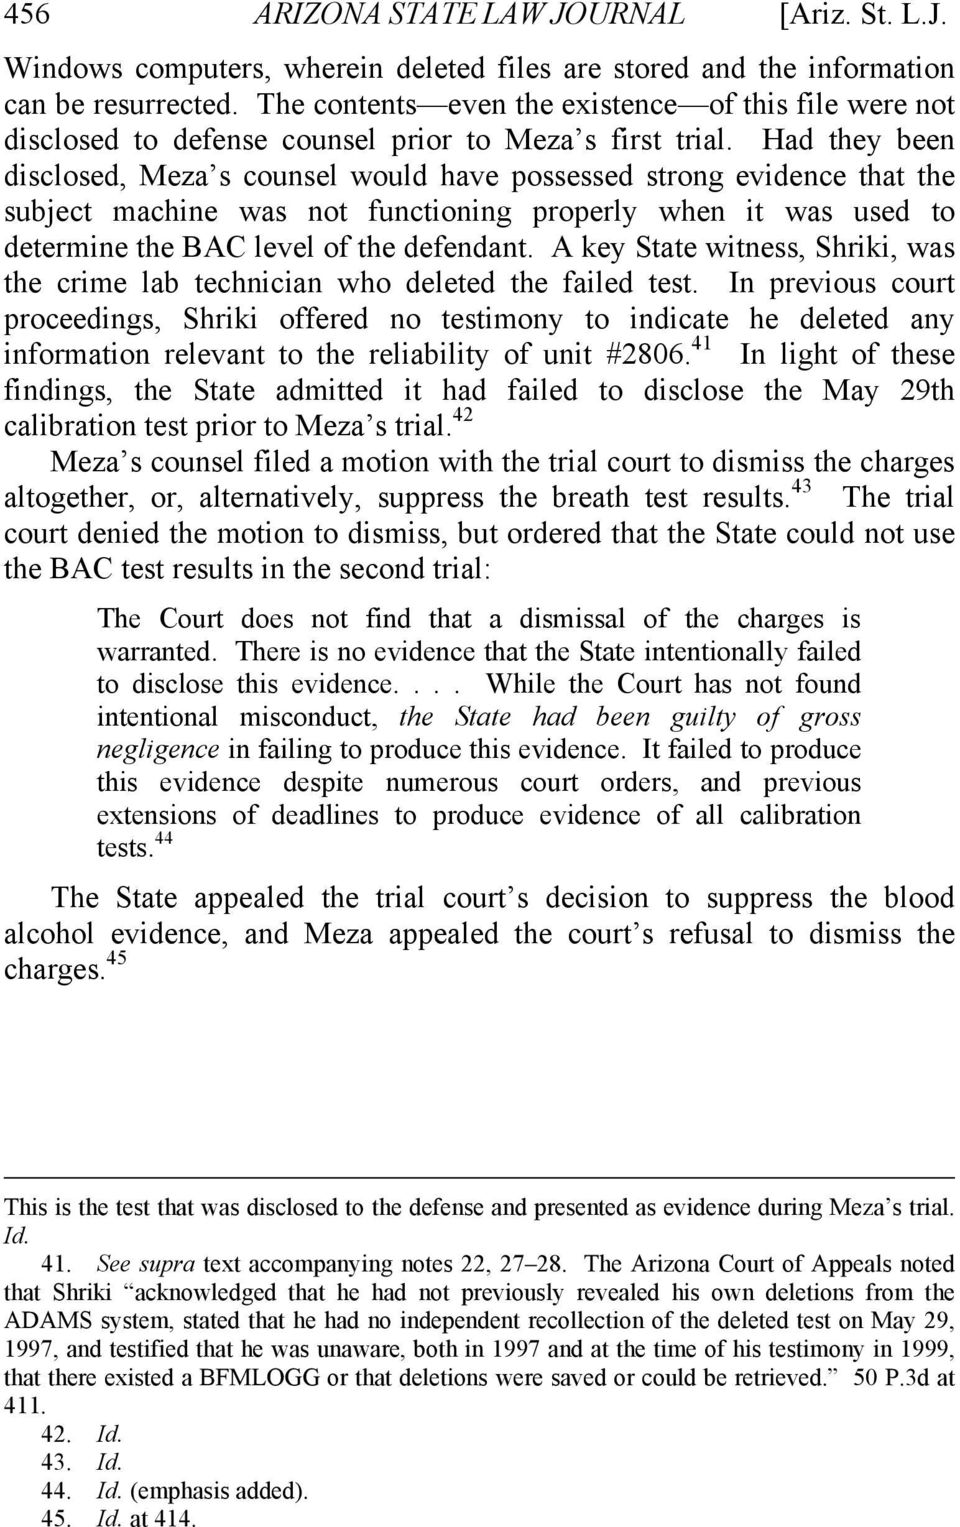 Had they been disclosed, Meza s counsel would have possessed strong evidence that the subject machine was not functioning properly when it was used to determine the BAC level of the defendant.